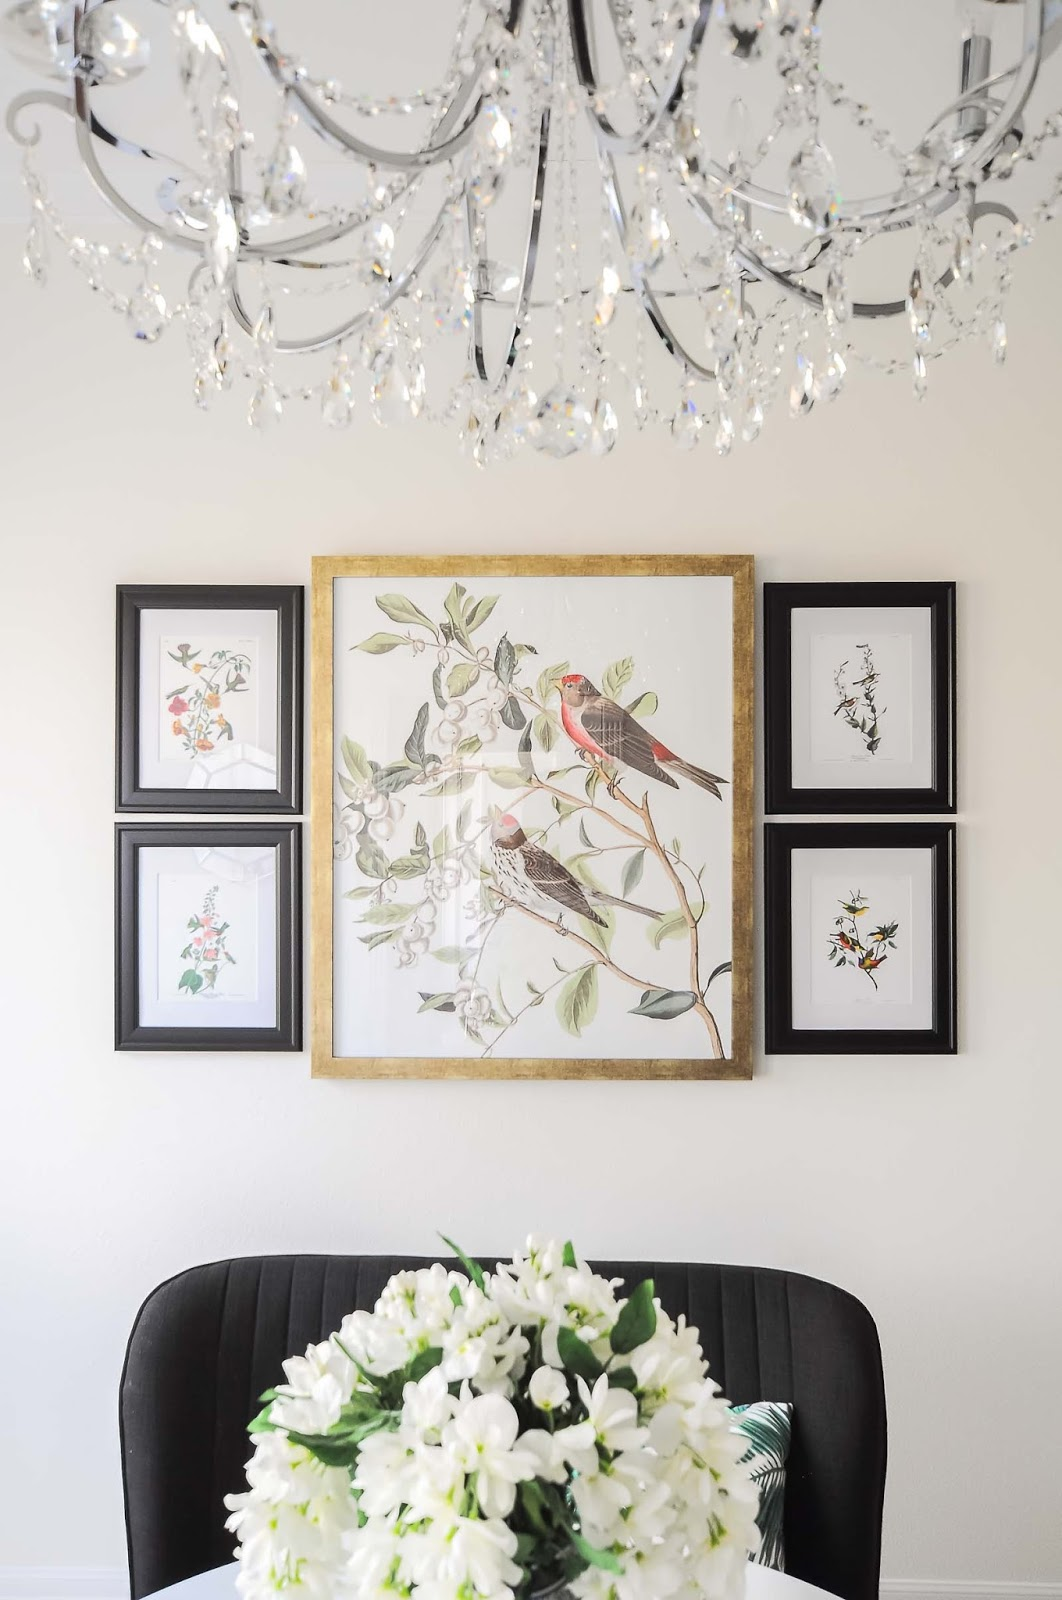 A chandelier frames the view of an audubon bird and botanical gallery wall in a dining room space.